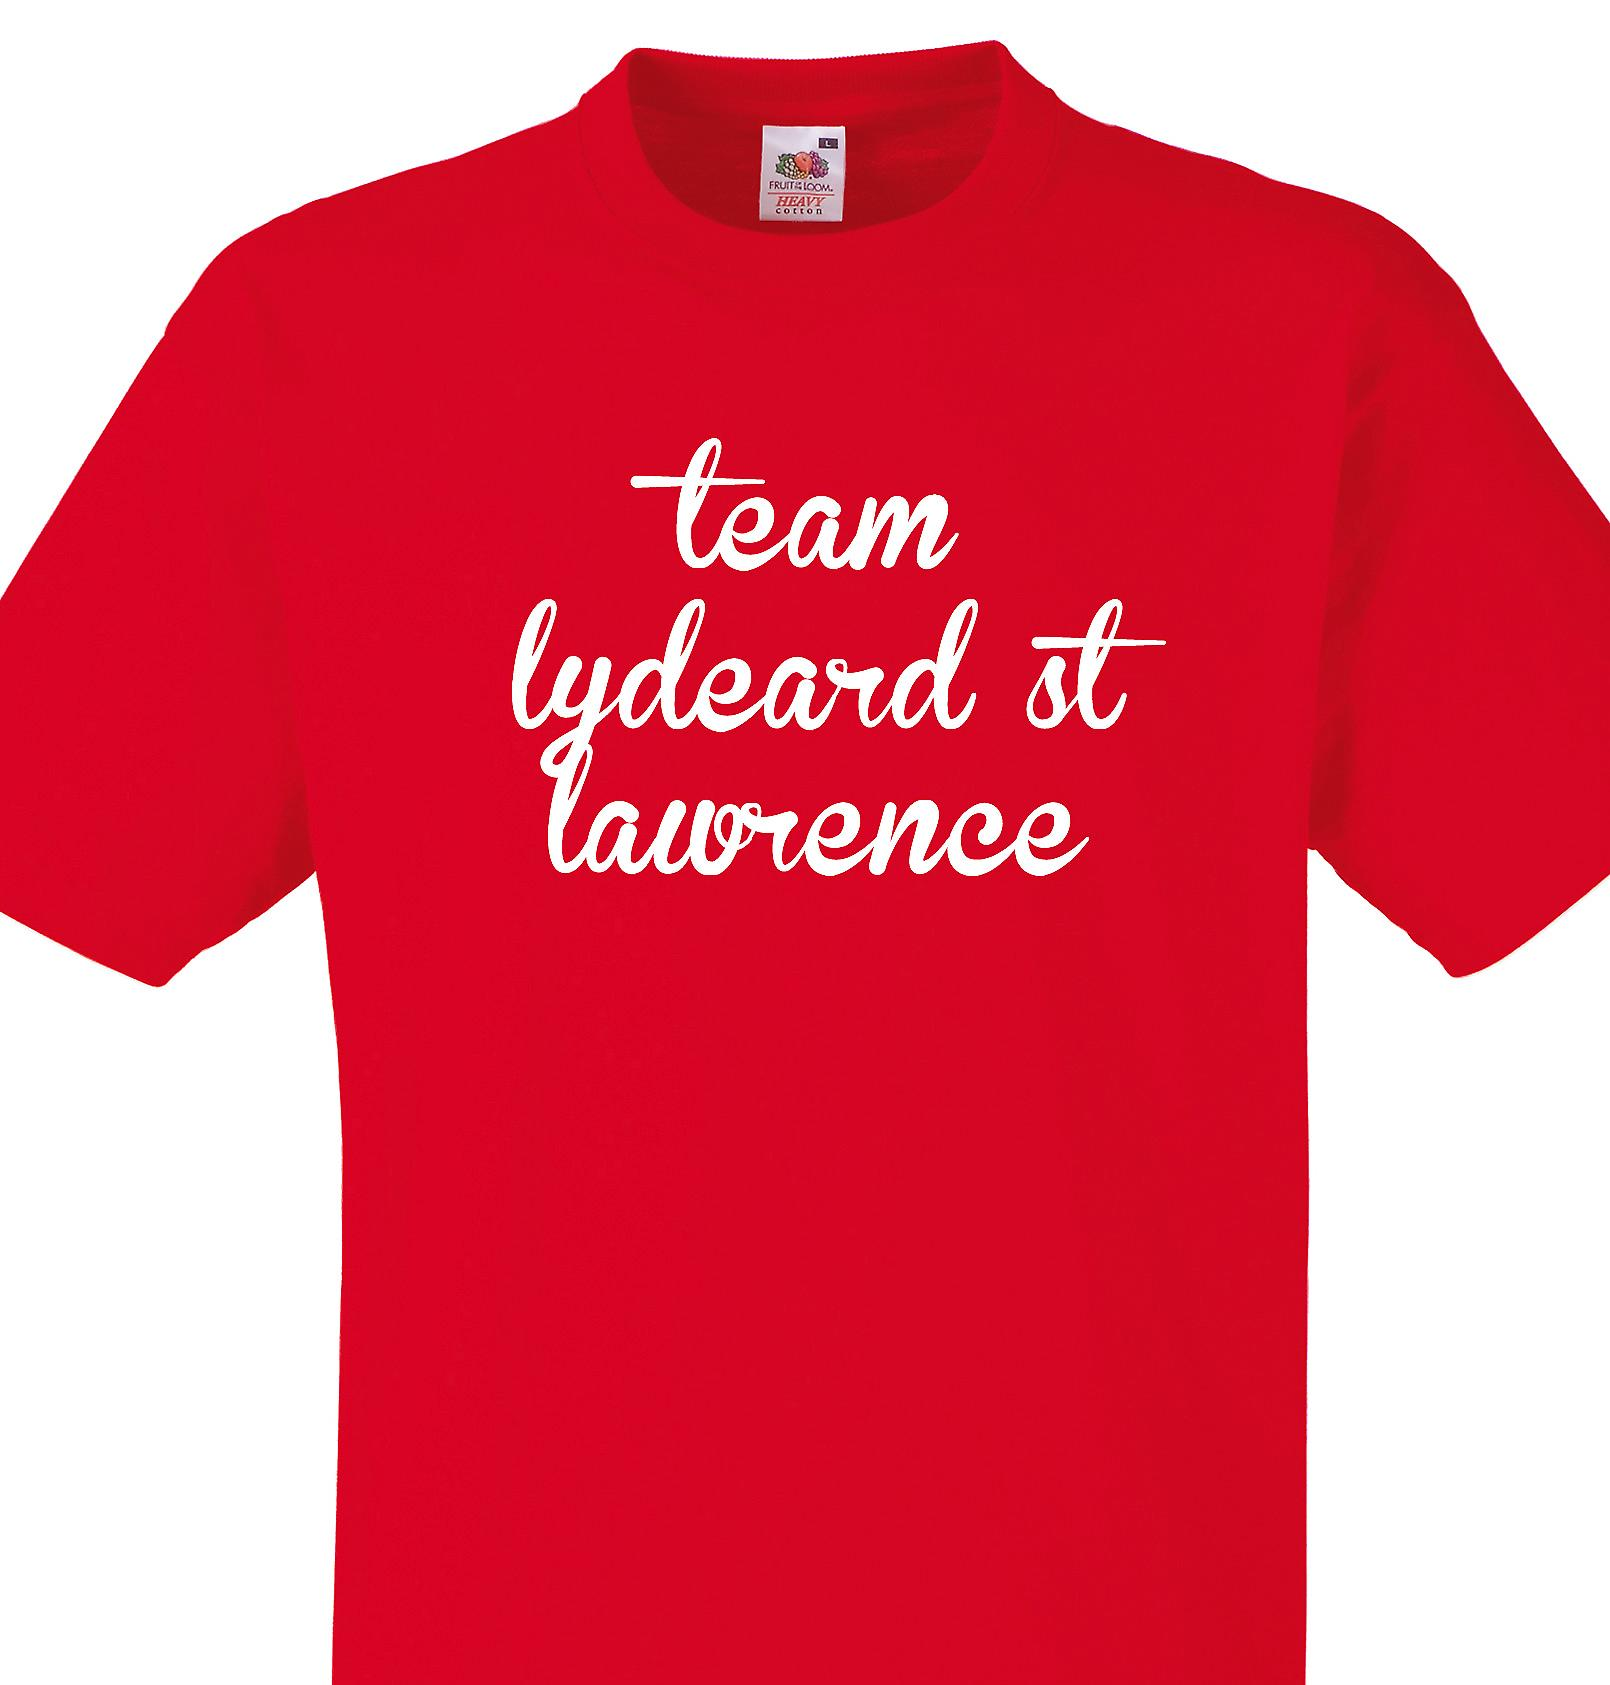 Team Lydeard st lawrence Red T shirt